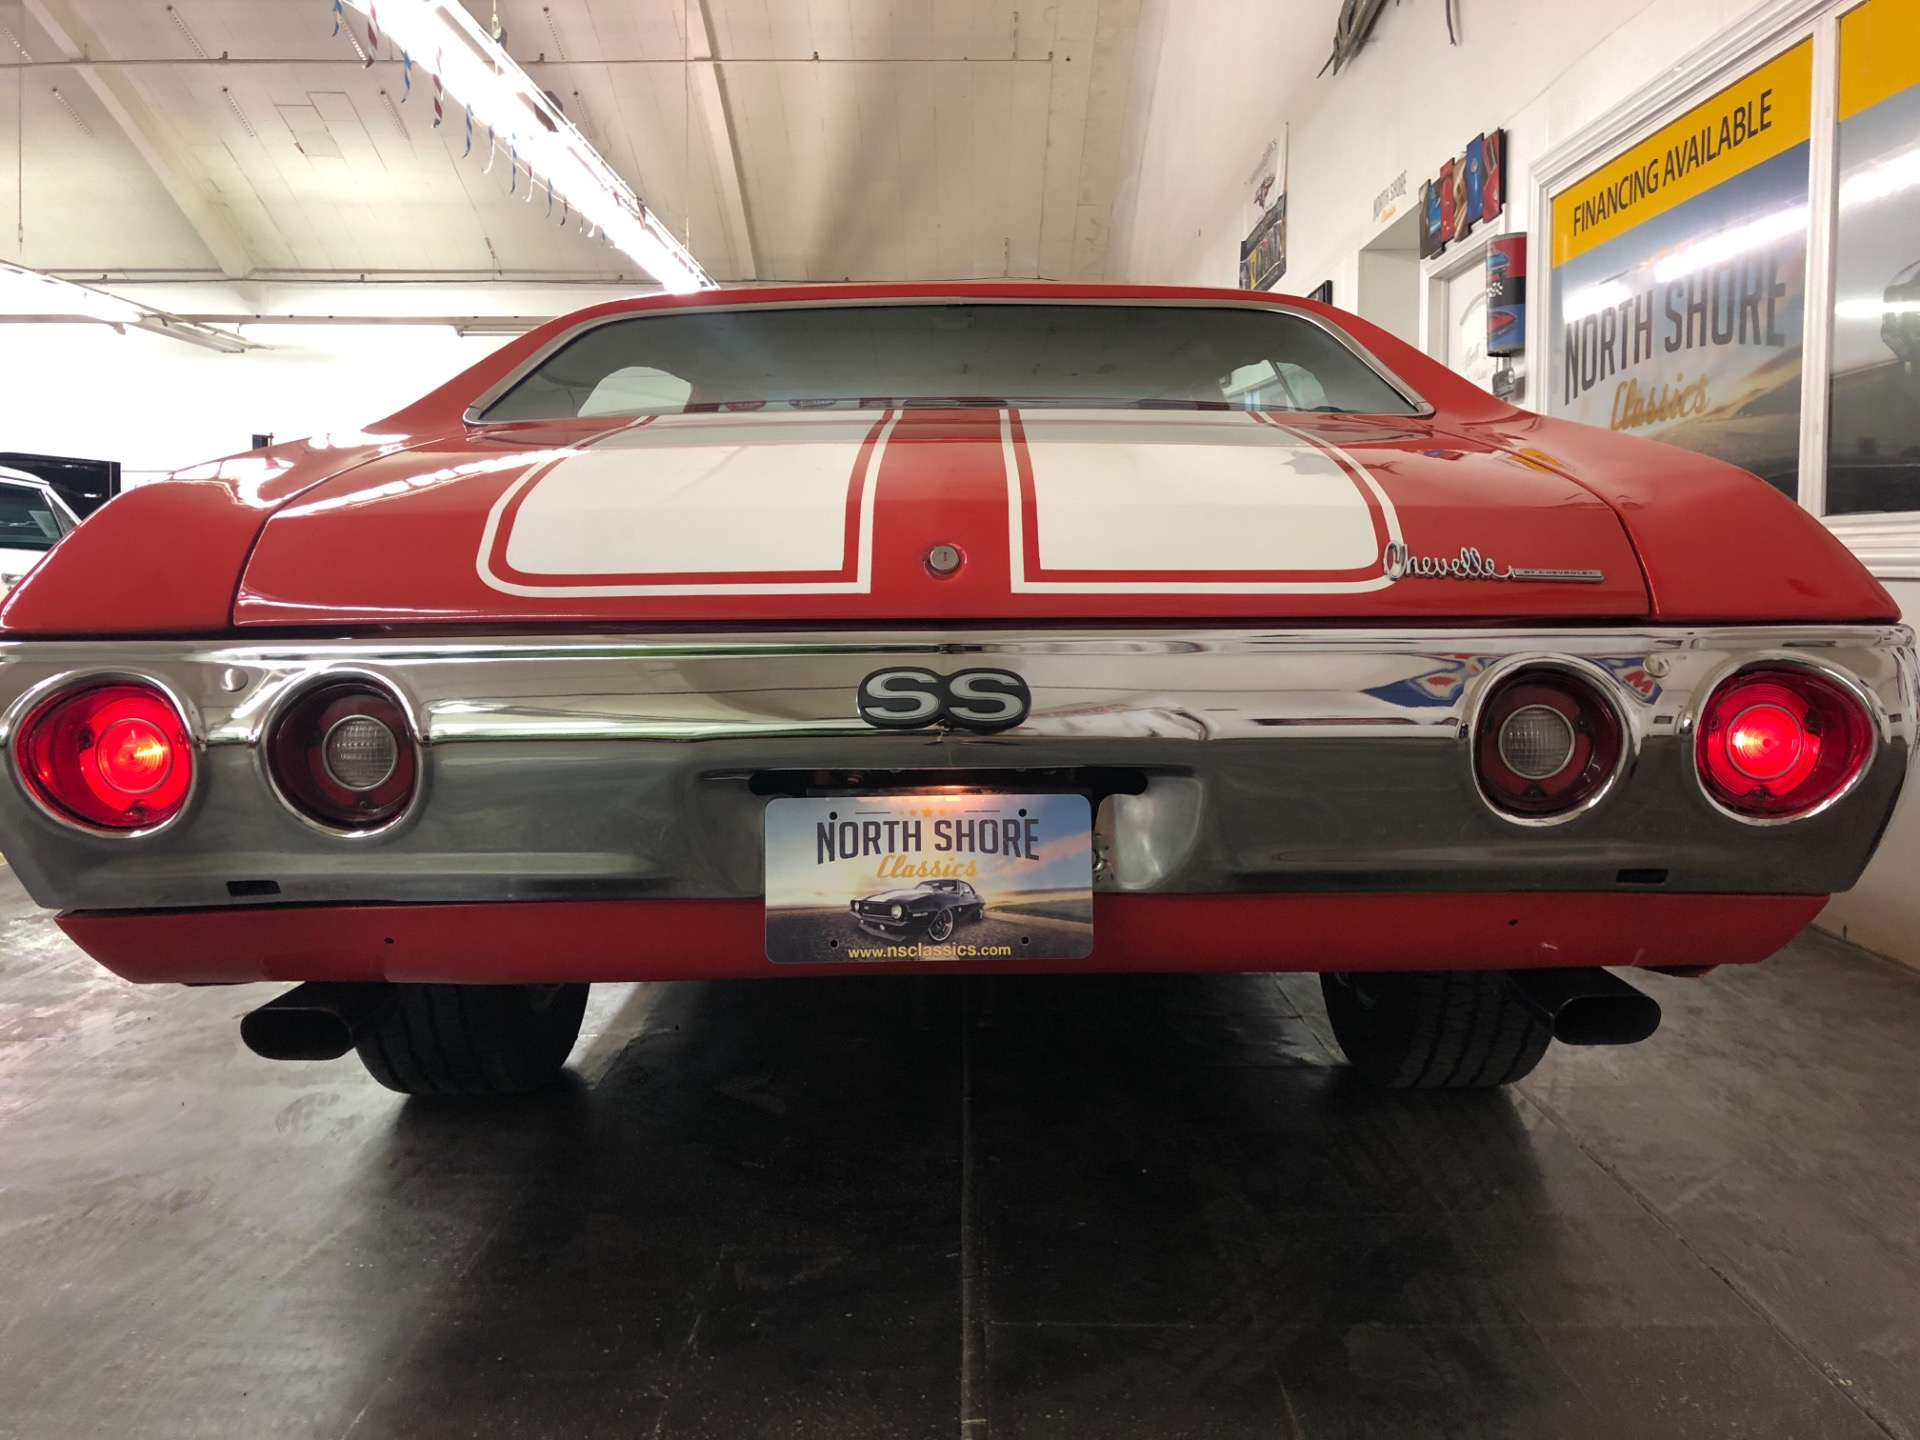 Used 1972 Chevrolet Chevelle -SUPER SPORT TRIBUTE - CUSTOM PEARL PAINT - A/C - NEW ENGINE | Mundelein, IL